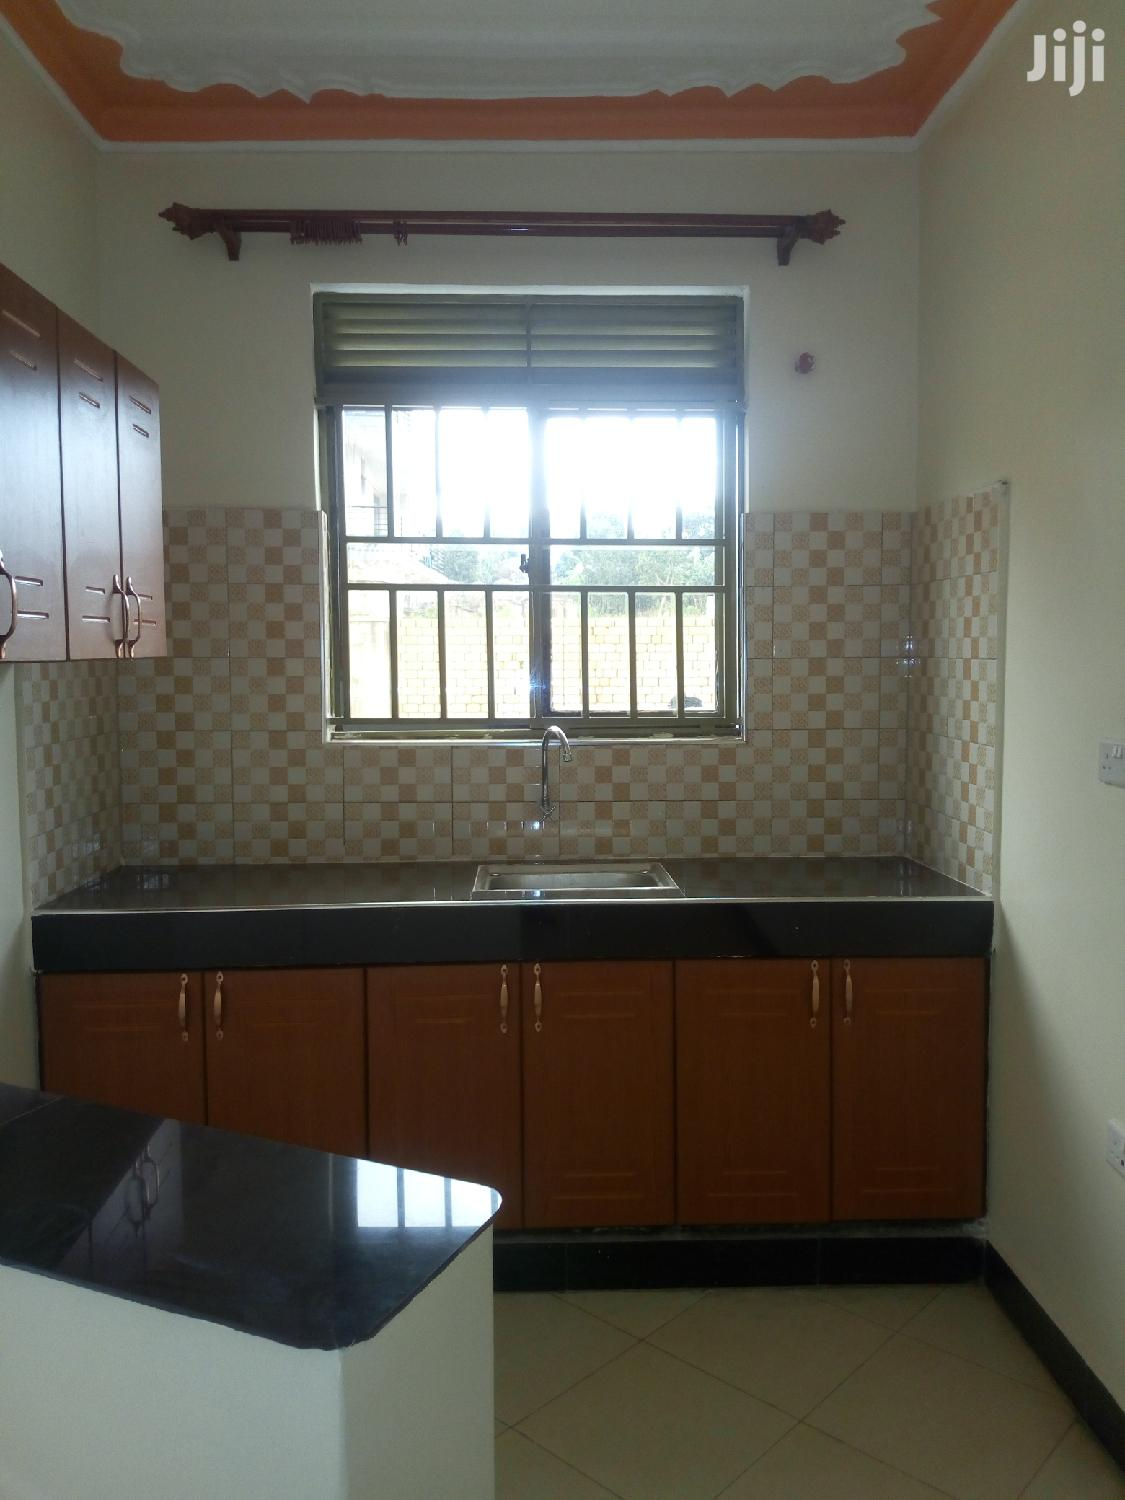 Double Room for Rent | Houses & Apartments For Rent for sale in Kampala, Central Region, Uganda